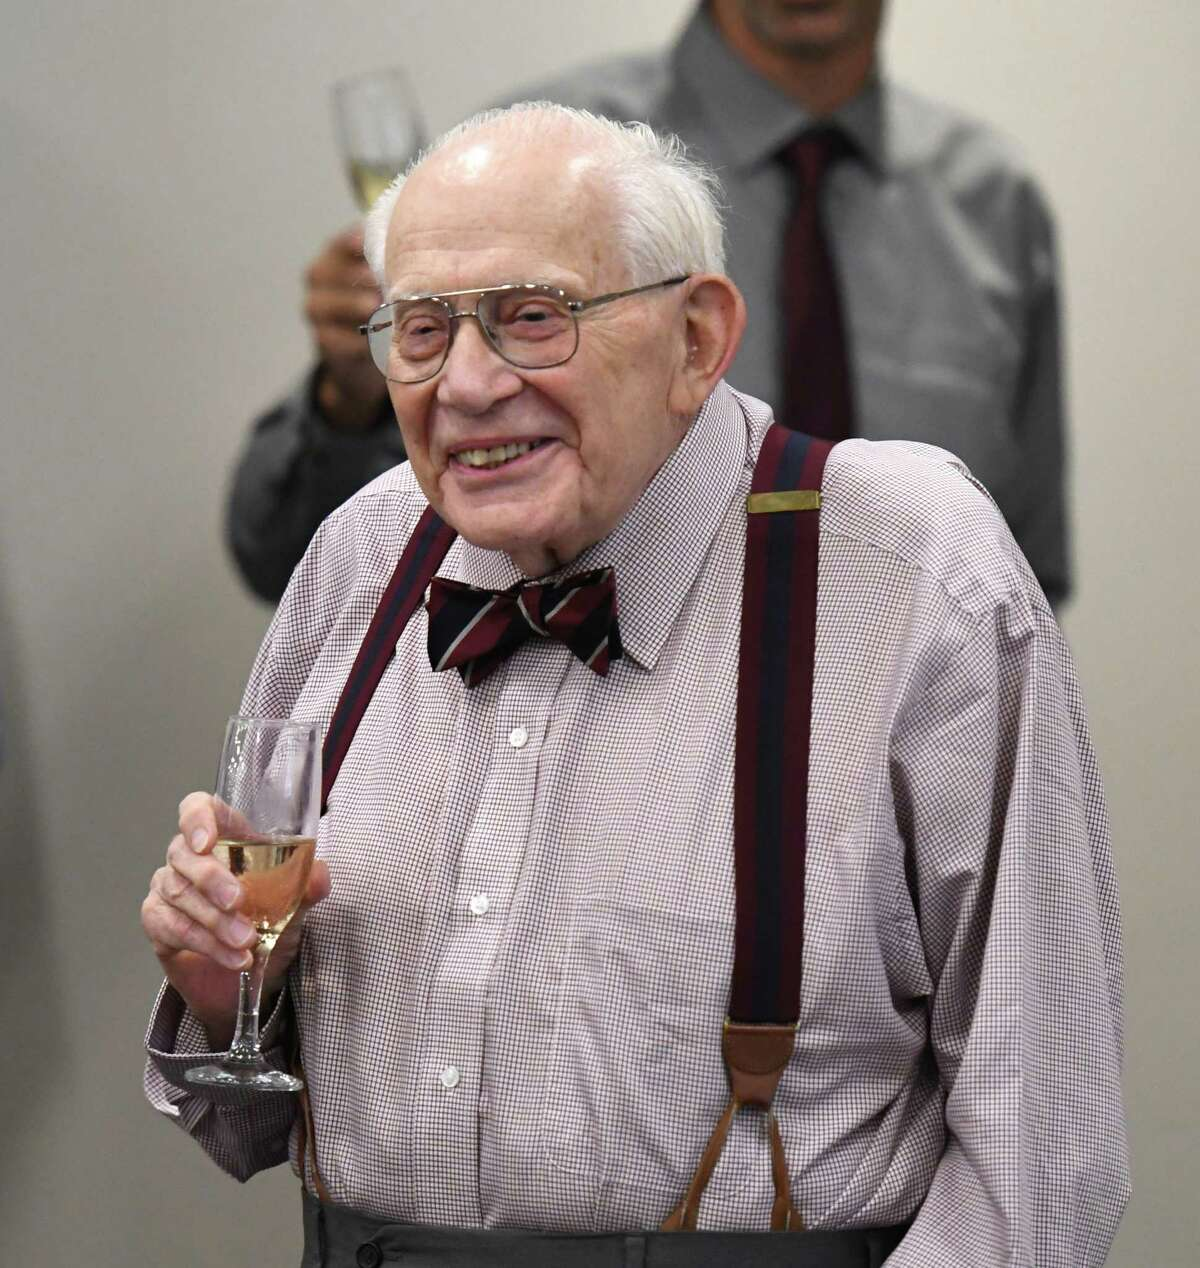 Former Times Union editor Harry M. Rosenfeld is honored by Publisher George R. Hearst III during a party to celebrate Rosenfeld's 90th birthday on Monday, Aug. 19, 2019, at the Hearst Media Center in Colonie, N.Y. (Will Waldron/Times Union)